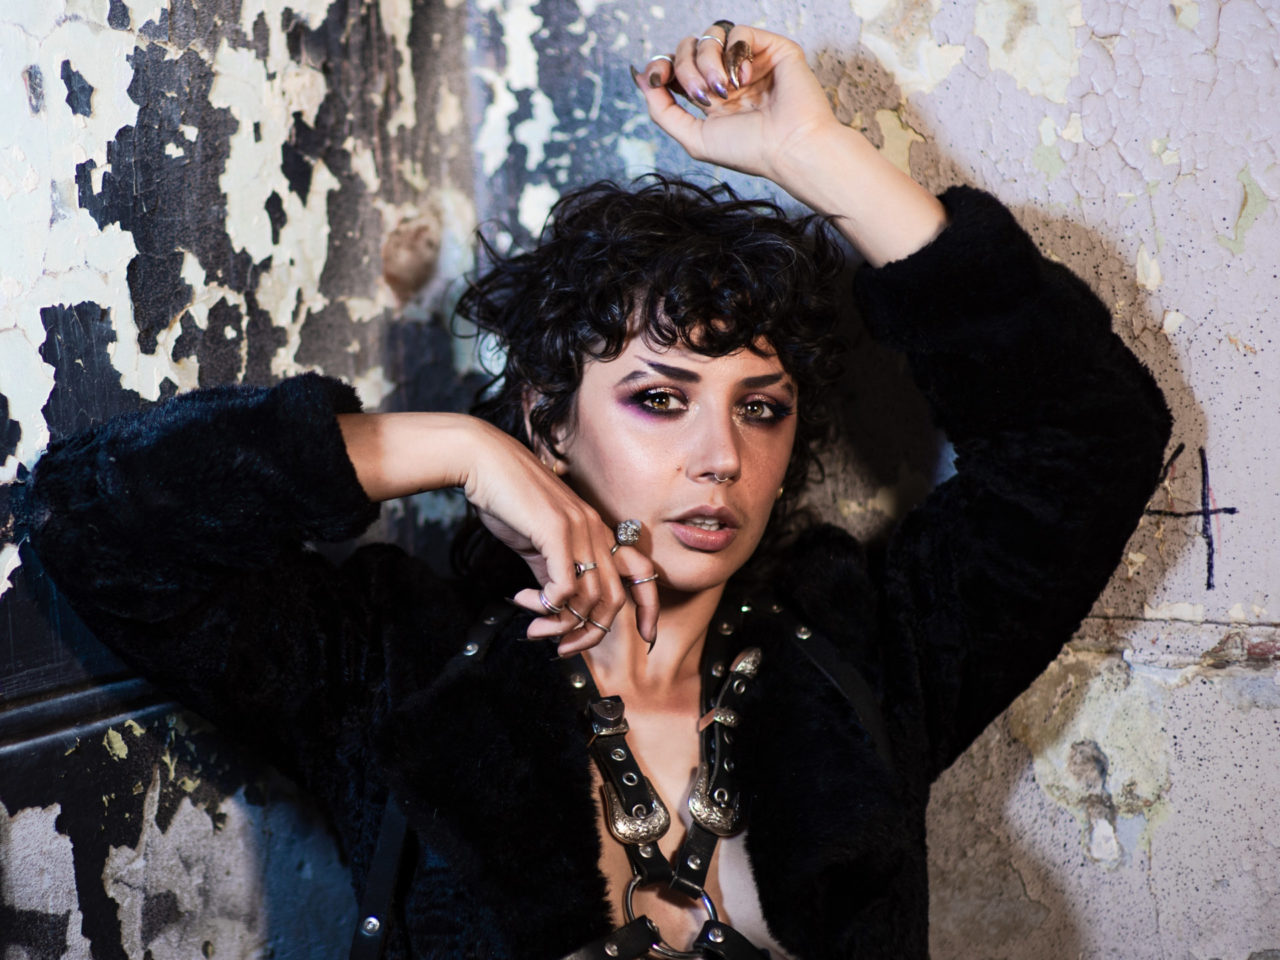 an androgynous, dark featured figure in a black fur coat and leather harness rests against a paint chipped wall with a number 4 scrawled hastily on it.